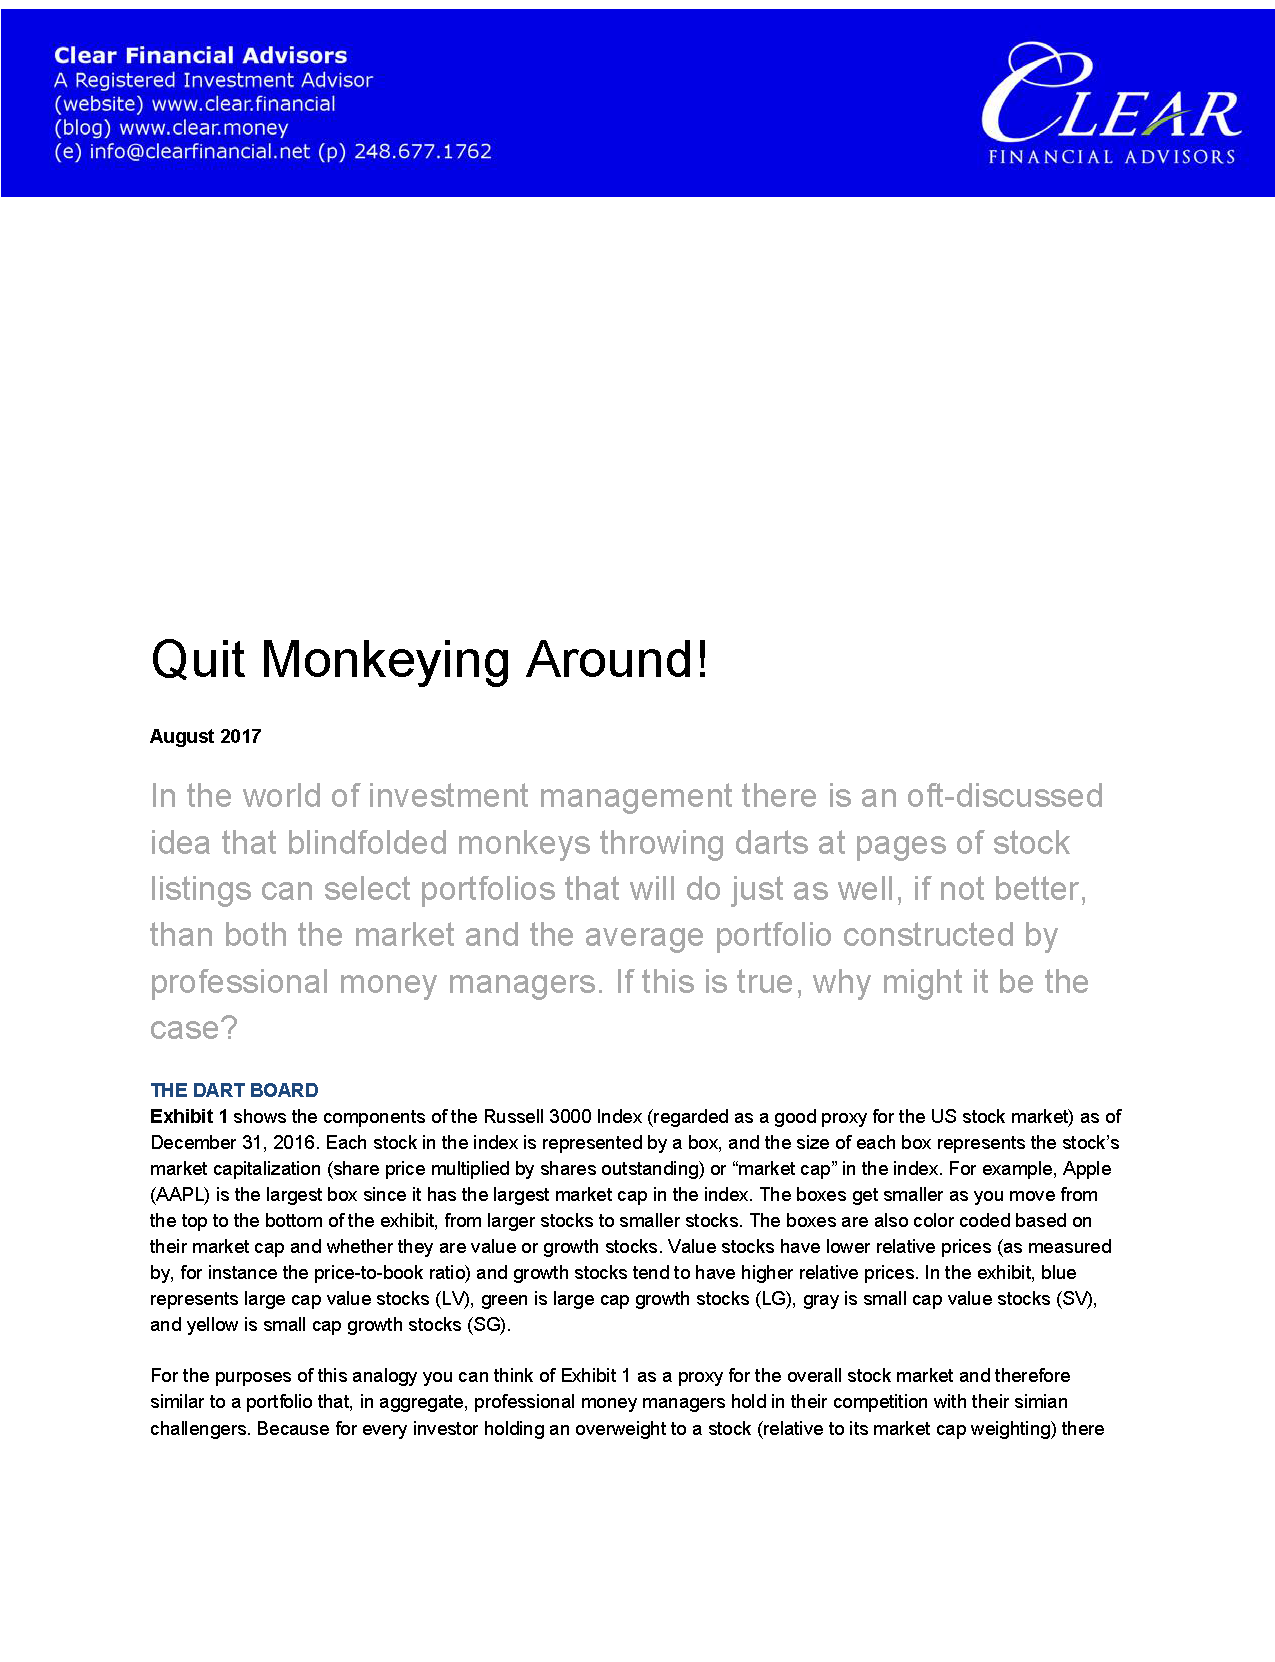 Special Report Quit Monkeying Around!_Page_1